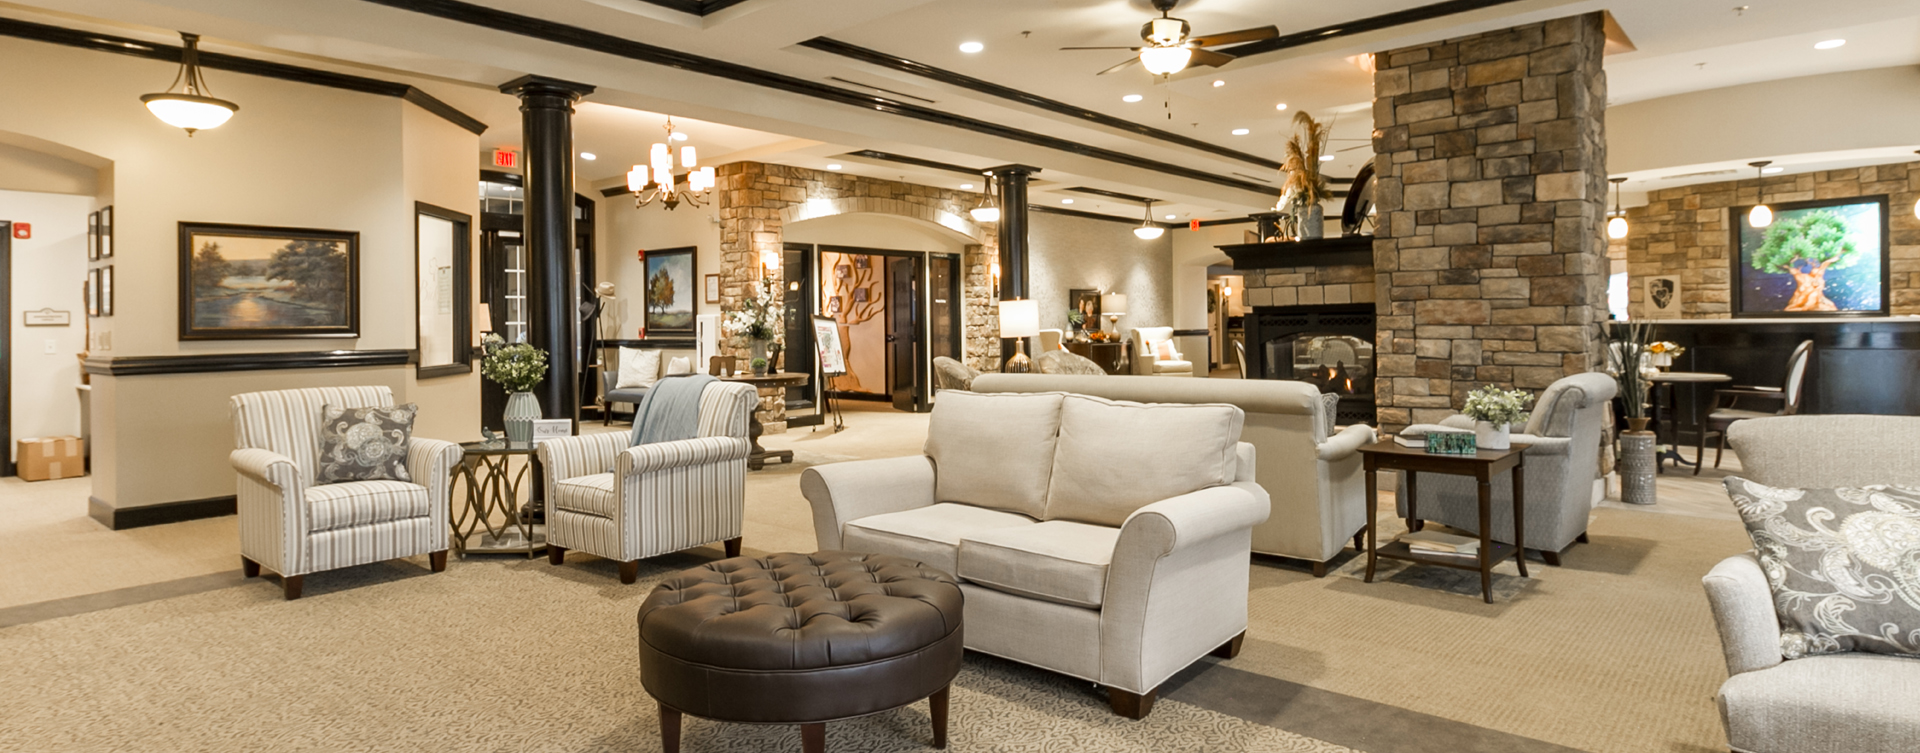 Socialize with friends in the living room at Bickford of Virginia Beach